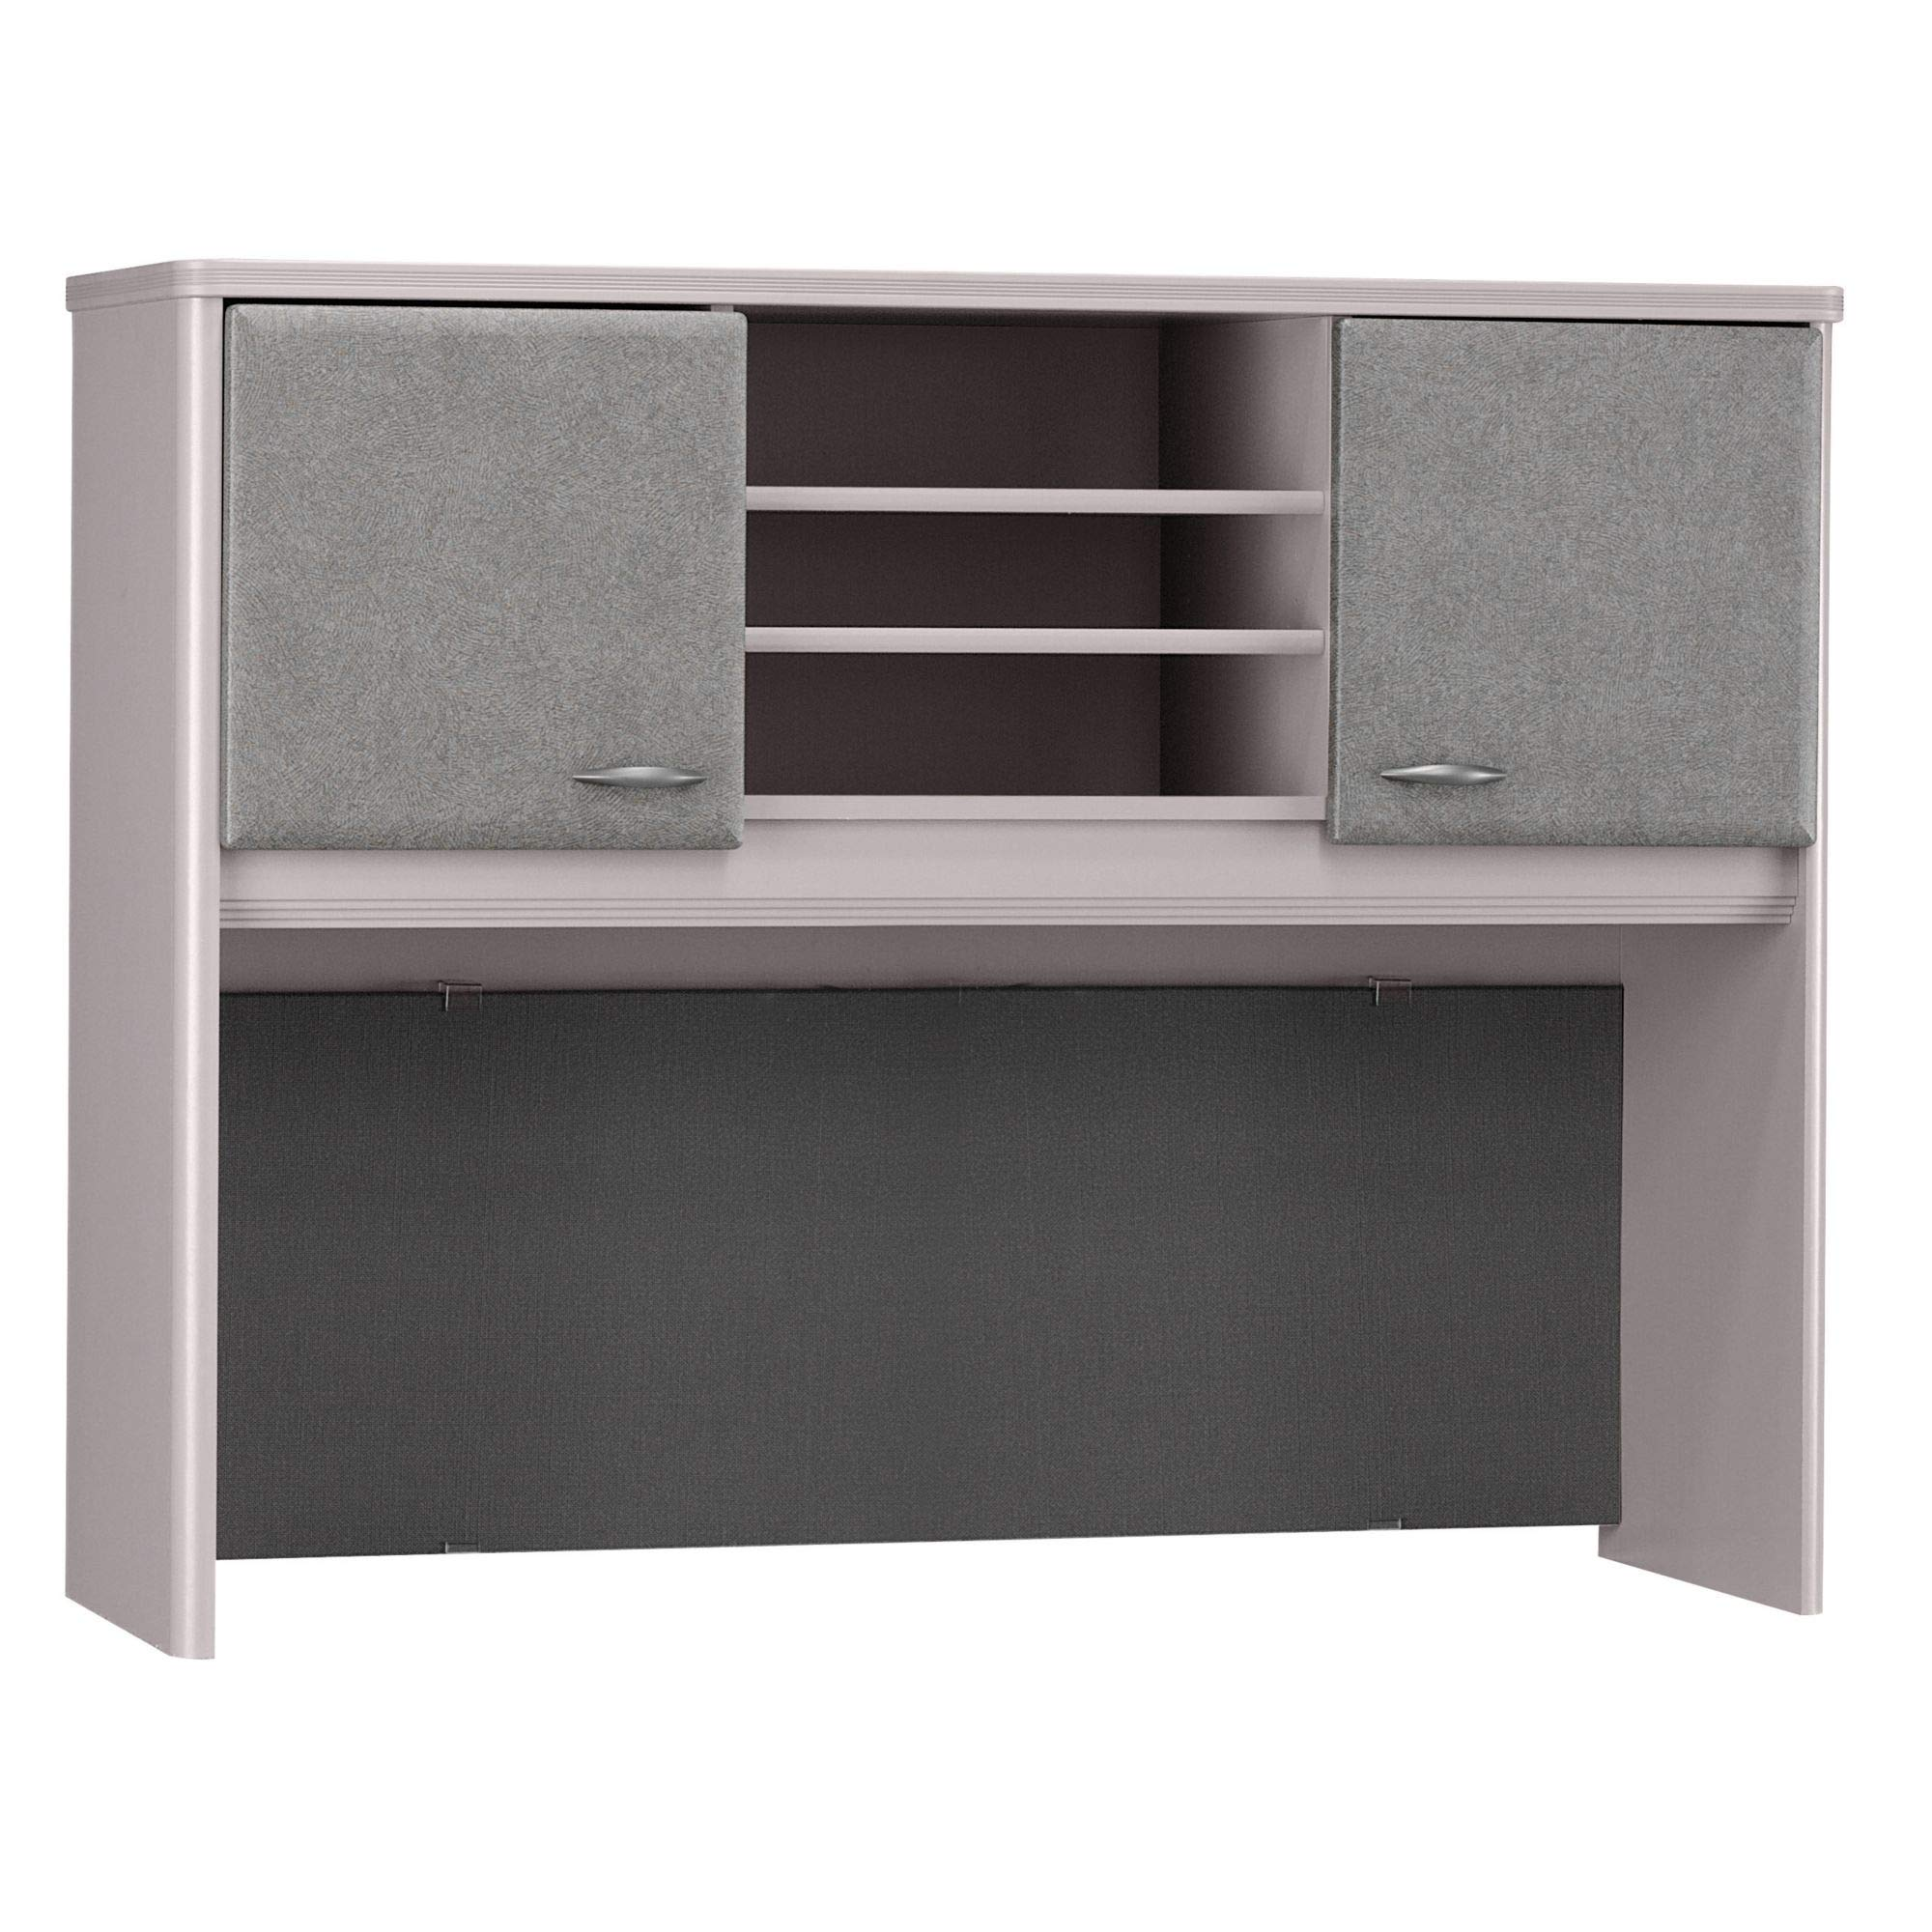 Bush Business Furniture Series A Collection 48W Hutch in Pewter by Bush Business Furniture